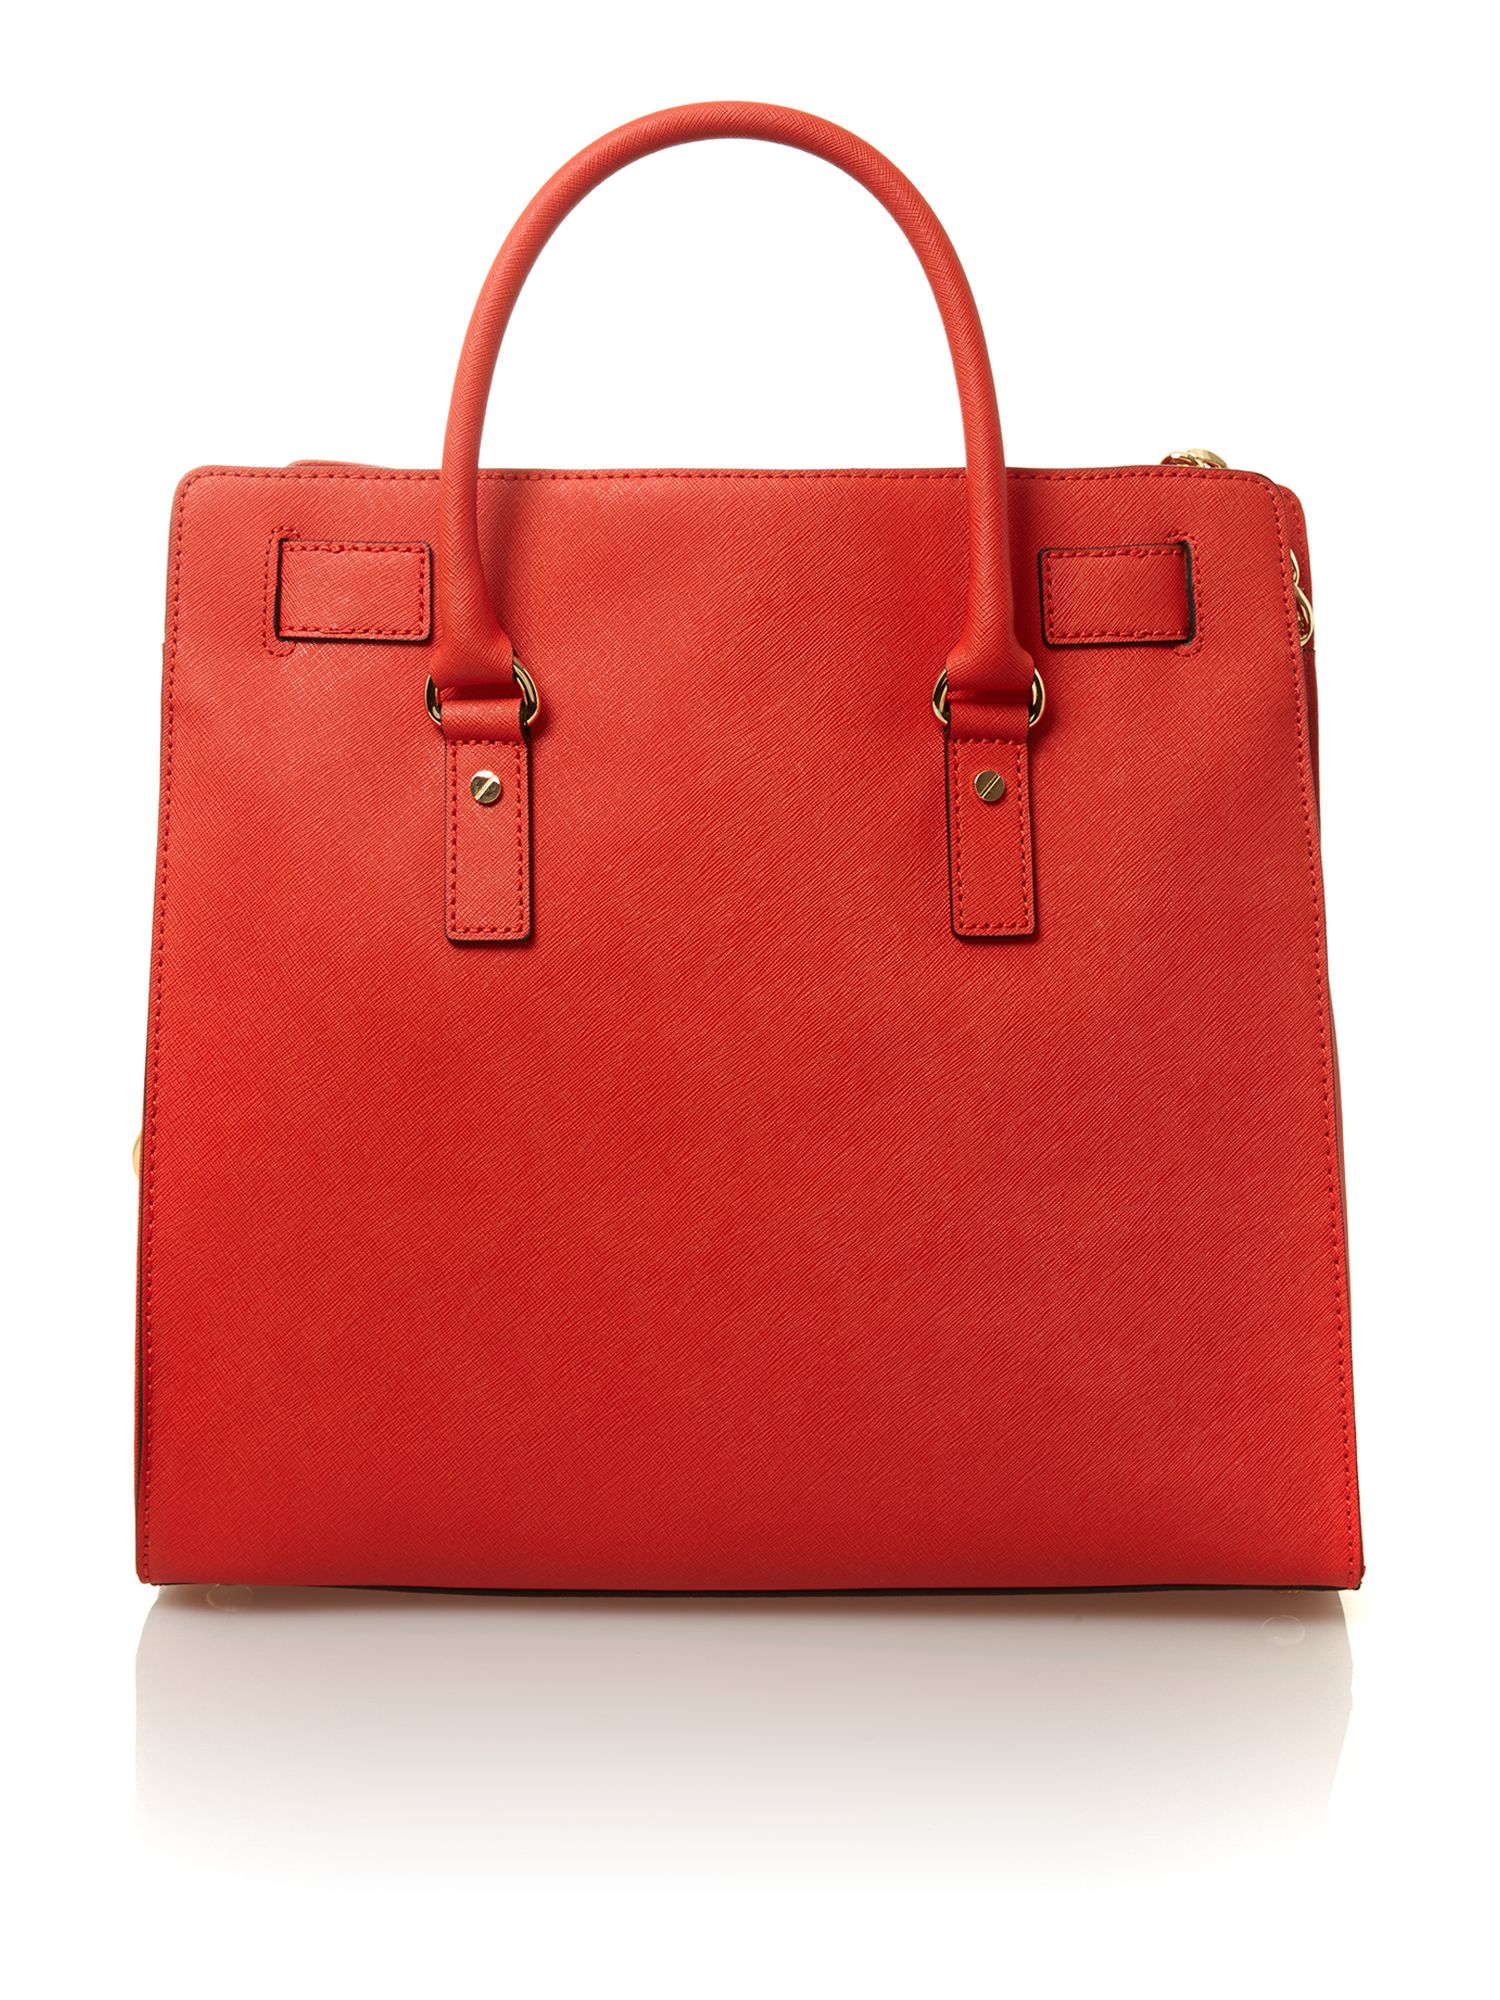 Hamilton red large tote bag